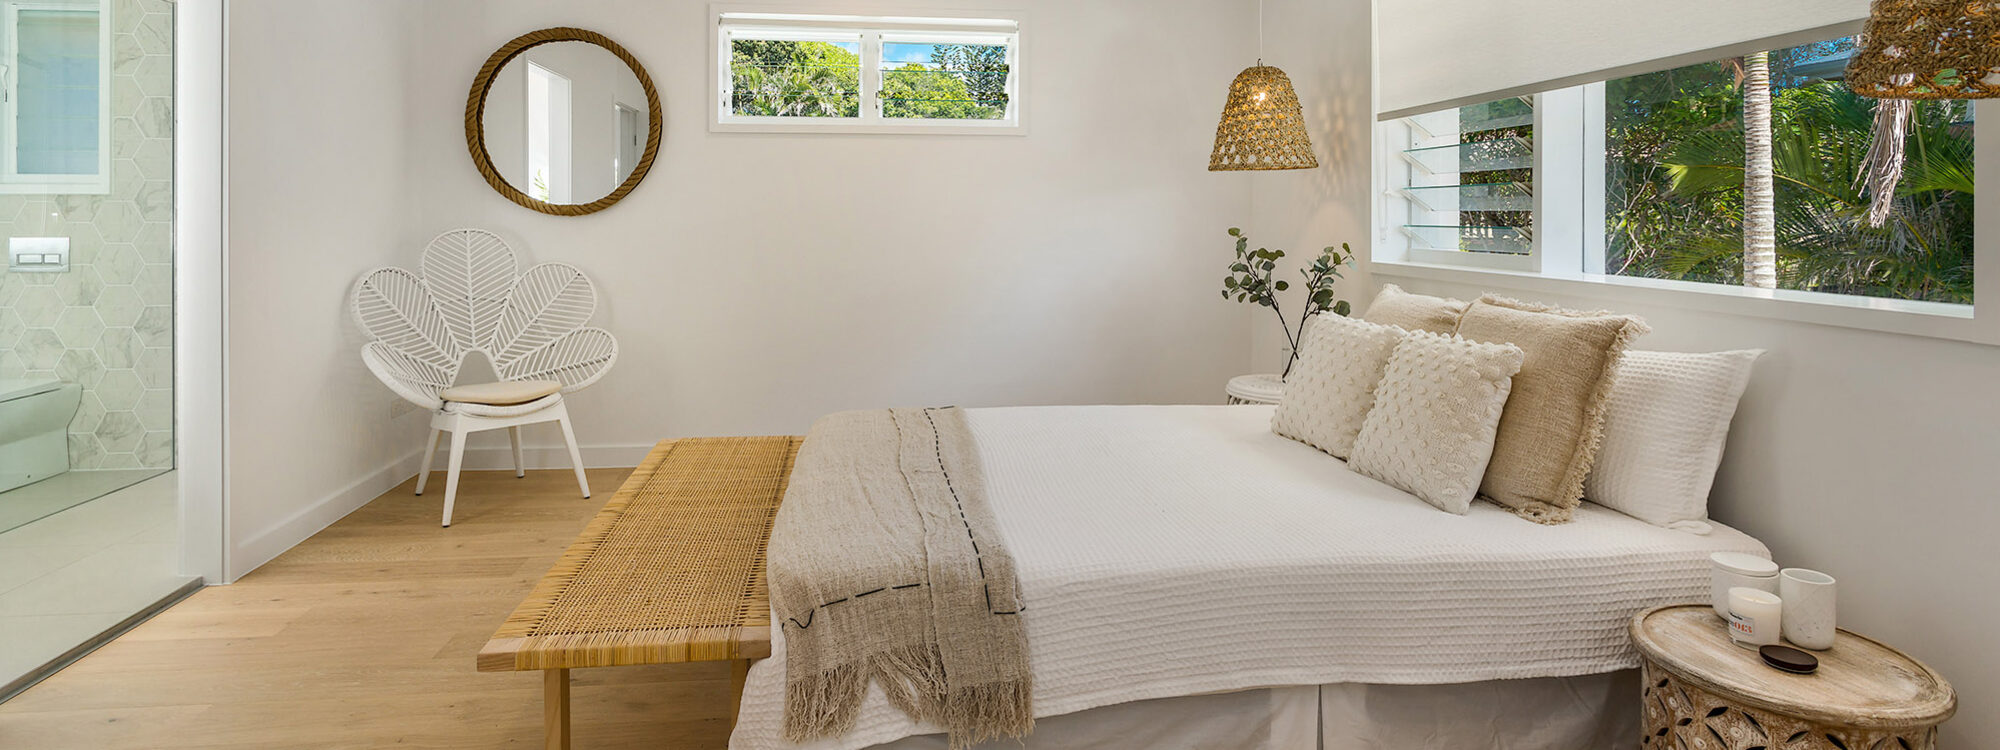 Castaway on Tallows - Byron Bay - Upstairs Master Bedroom and Ensuite 4